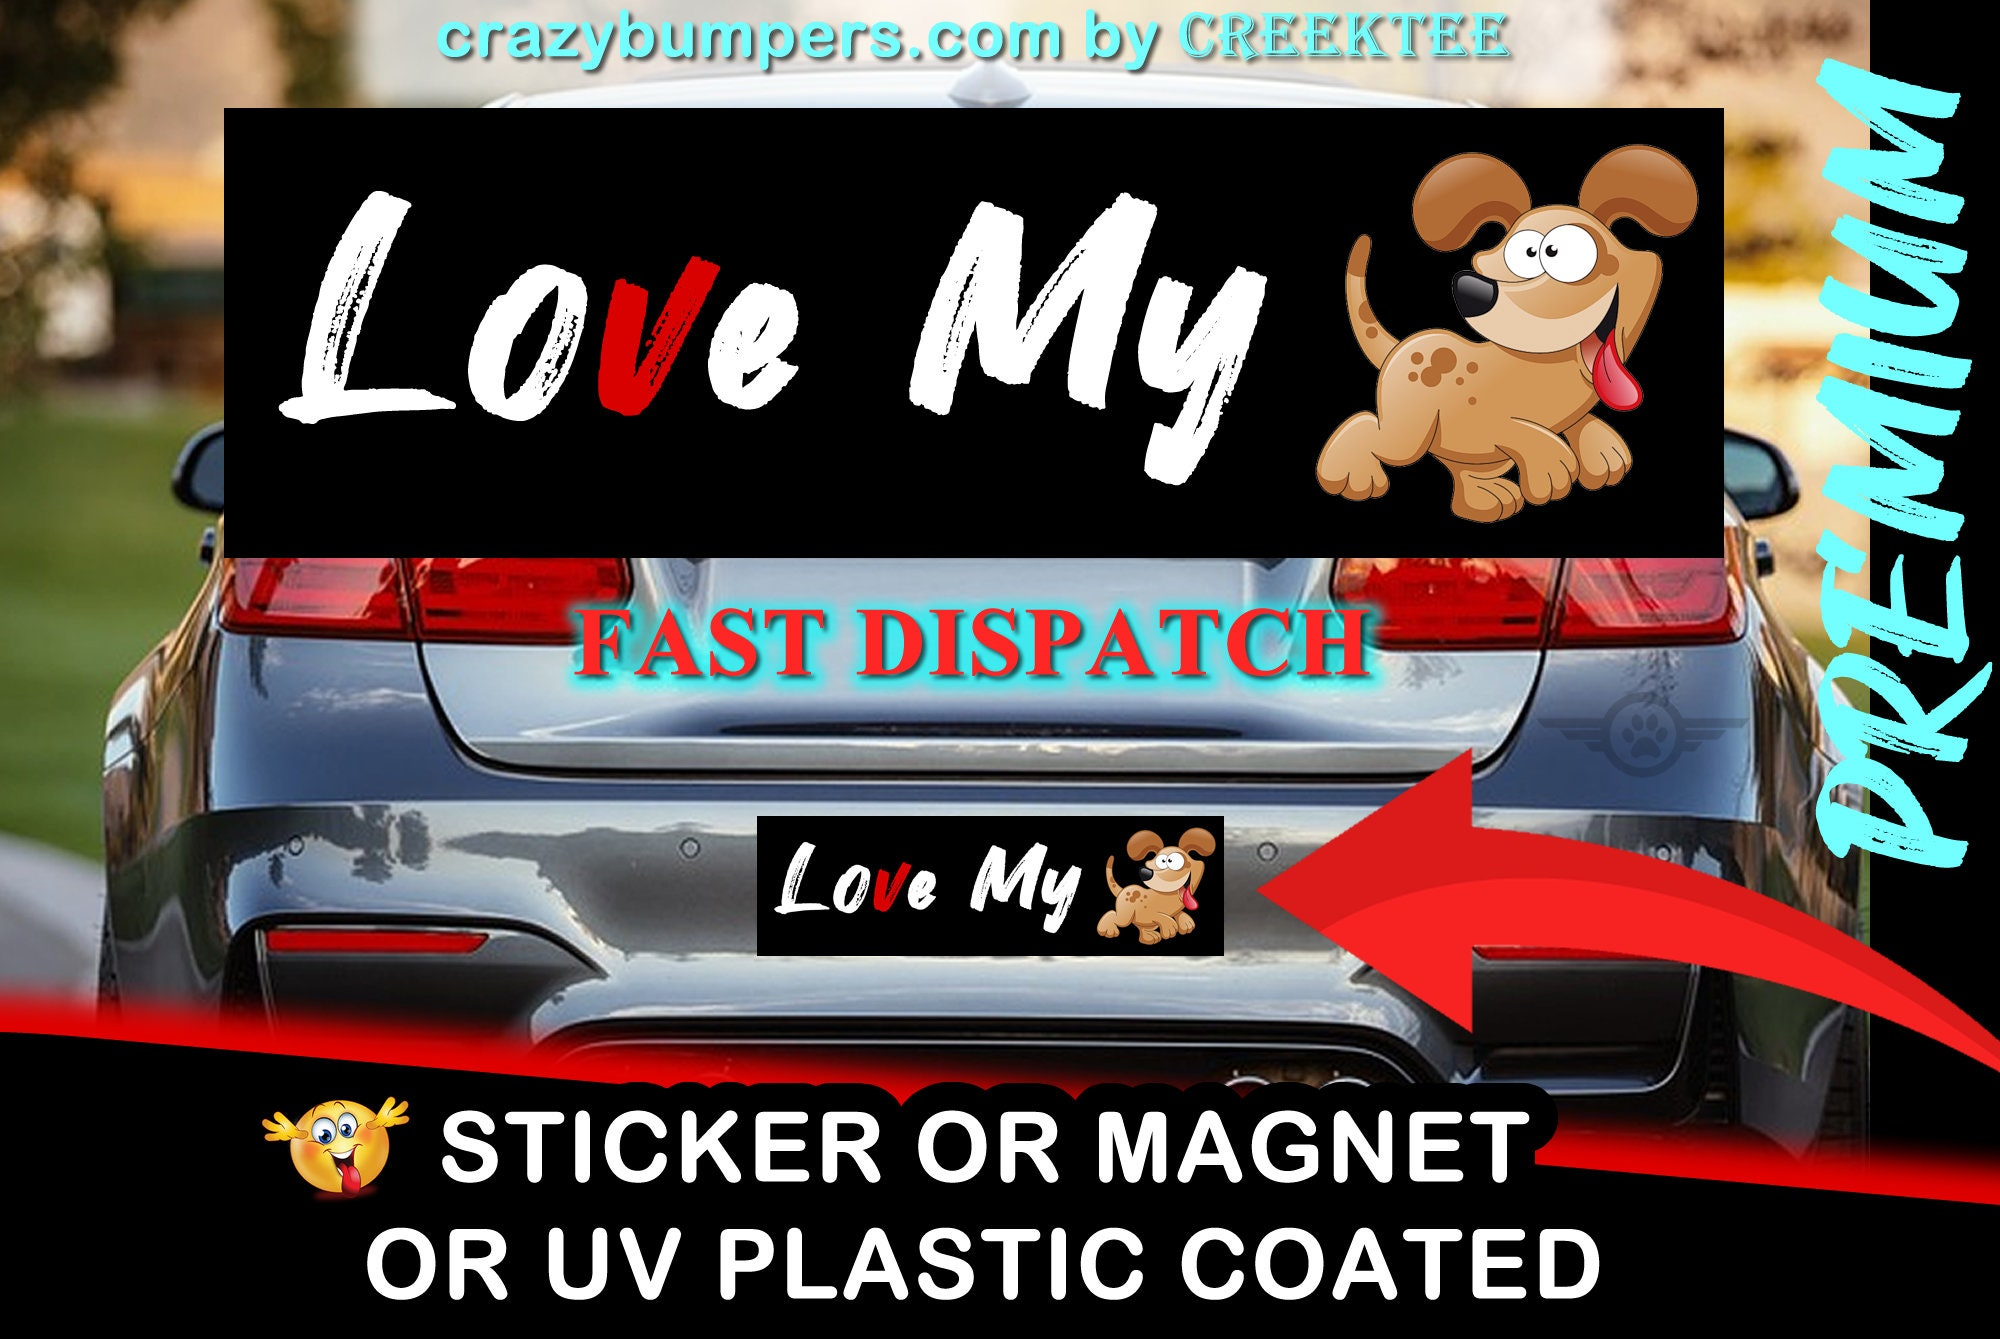 CAD$9.99 - Funny Bumper Sticker 10 x 3 Bumper Sticker or Magnetic Bumper - love my dog, co-exist, funky town, dont poke the bear, honk if your horny